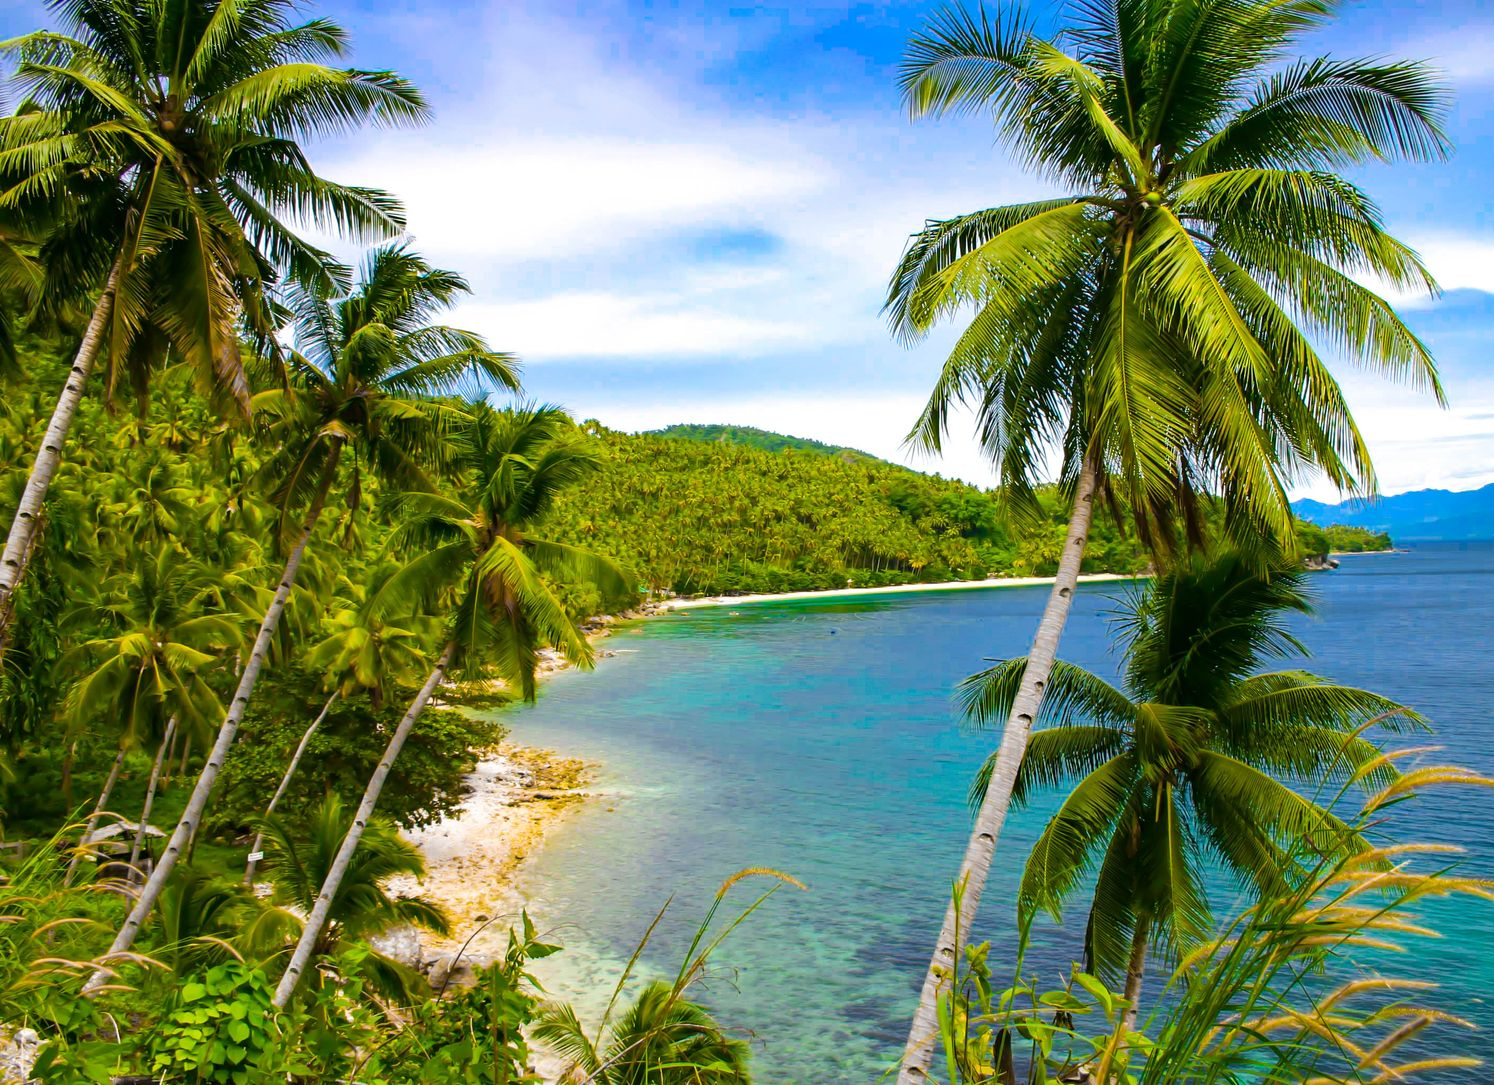 Coconut palm trees on a tropical sandy beach facing waters of turquoise and blue waters in Samal, one of the best places to visit in the Philippines